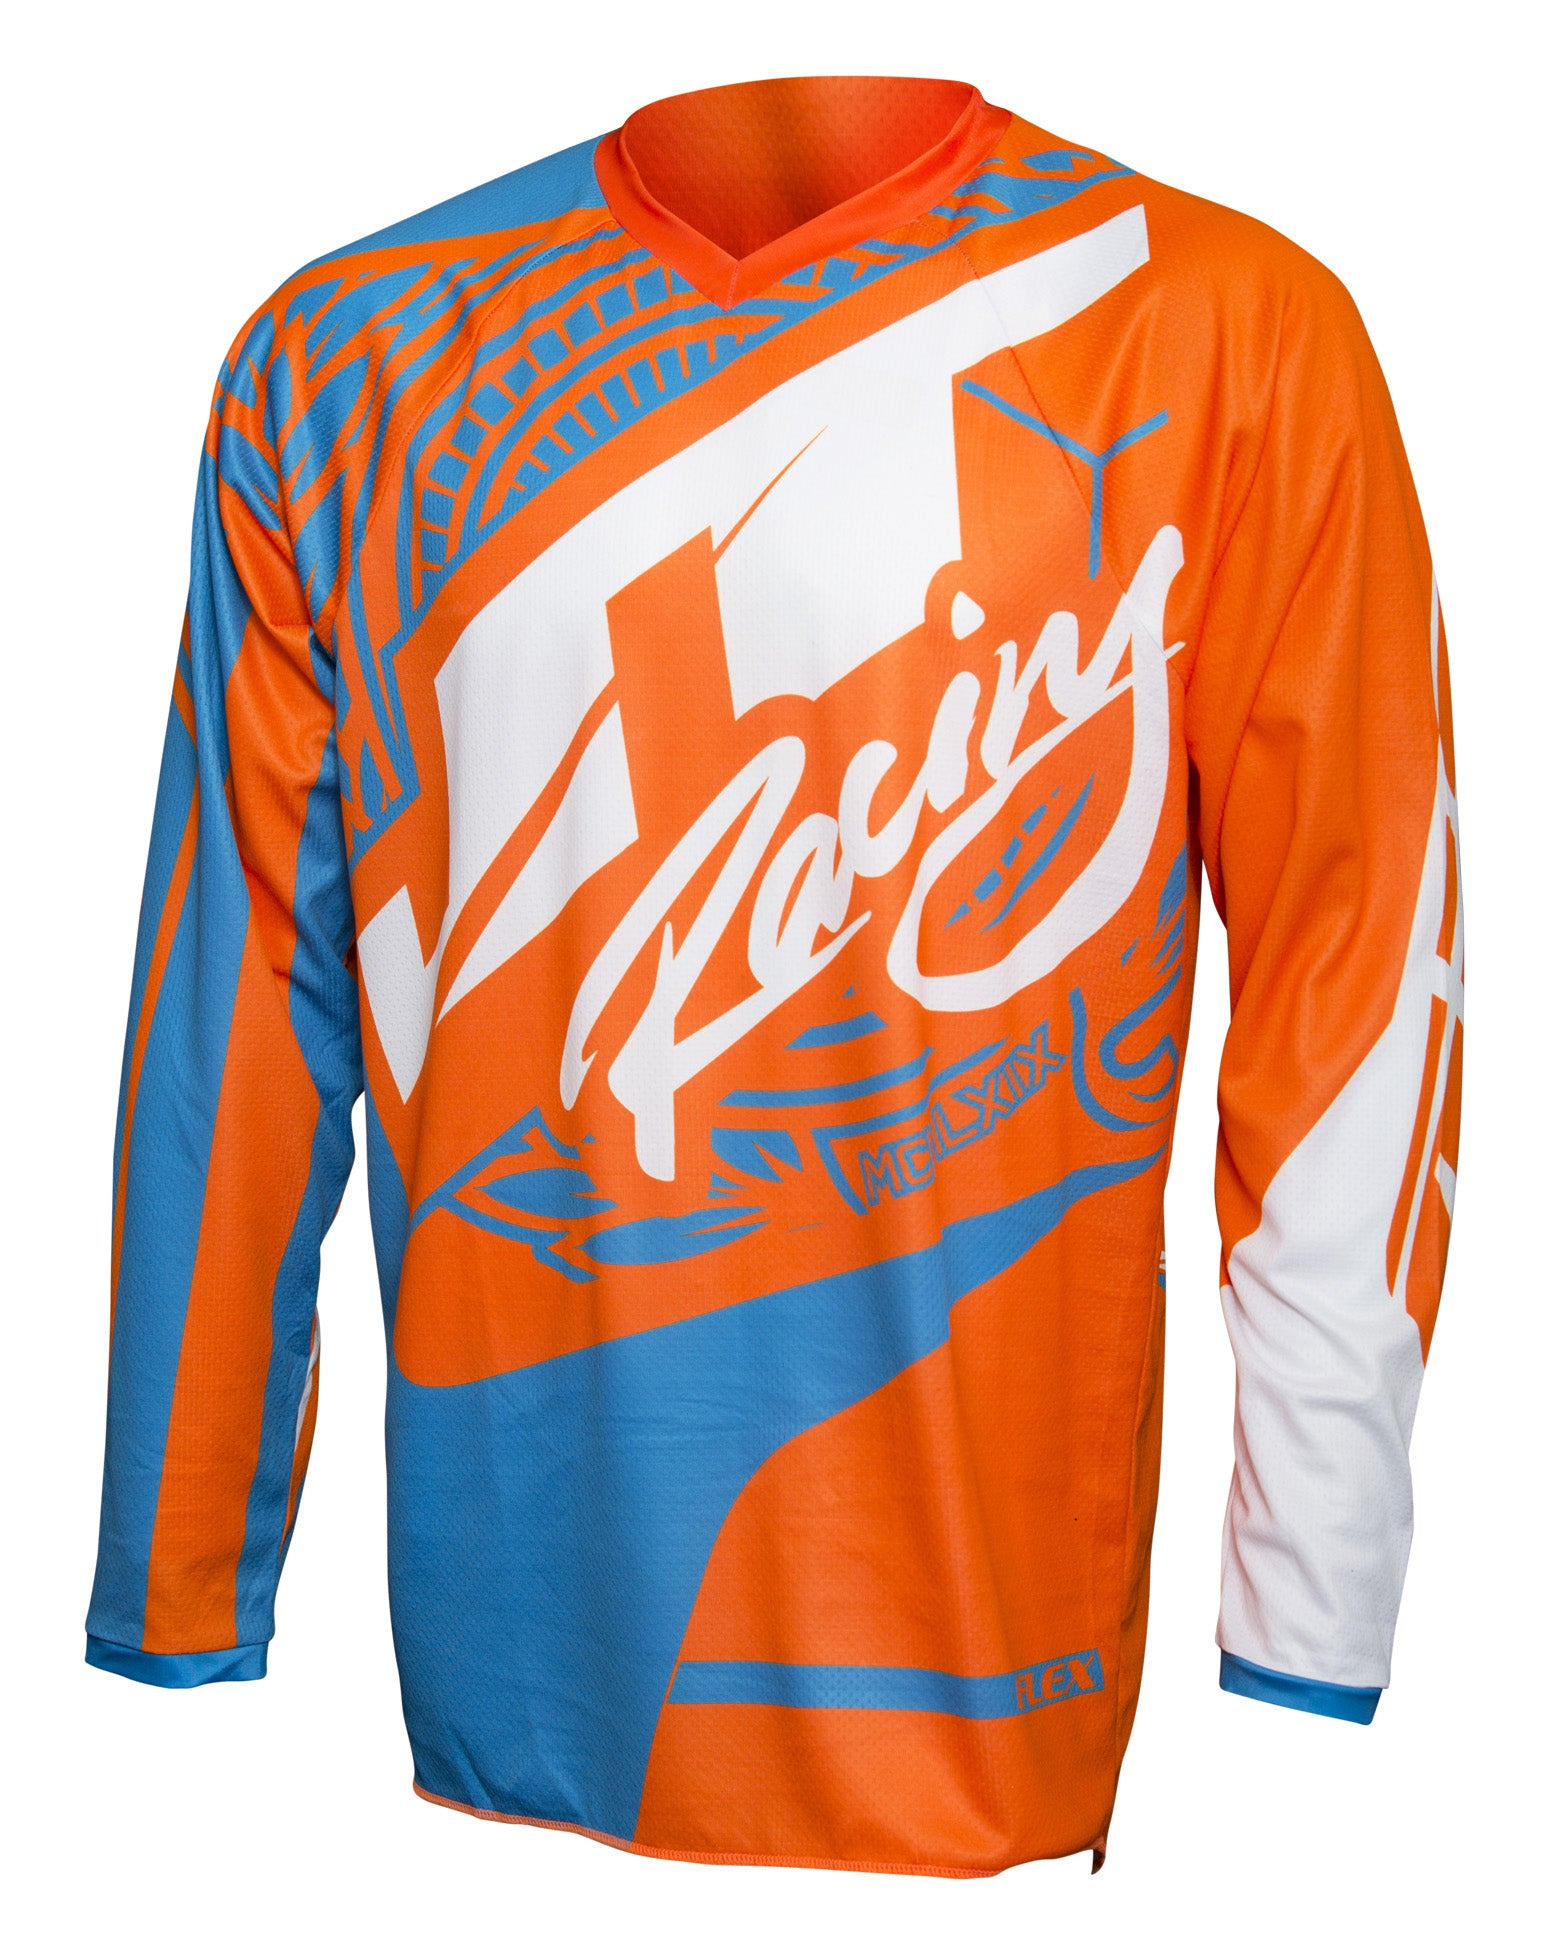 JT RACING USA-2017 Flex-Victory Jersey, Cyan/Orange